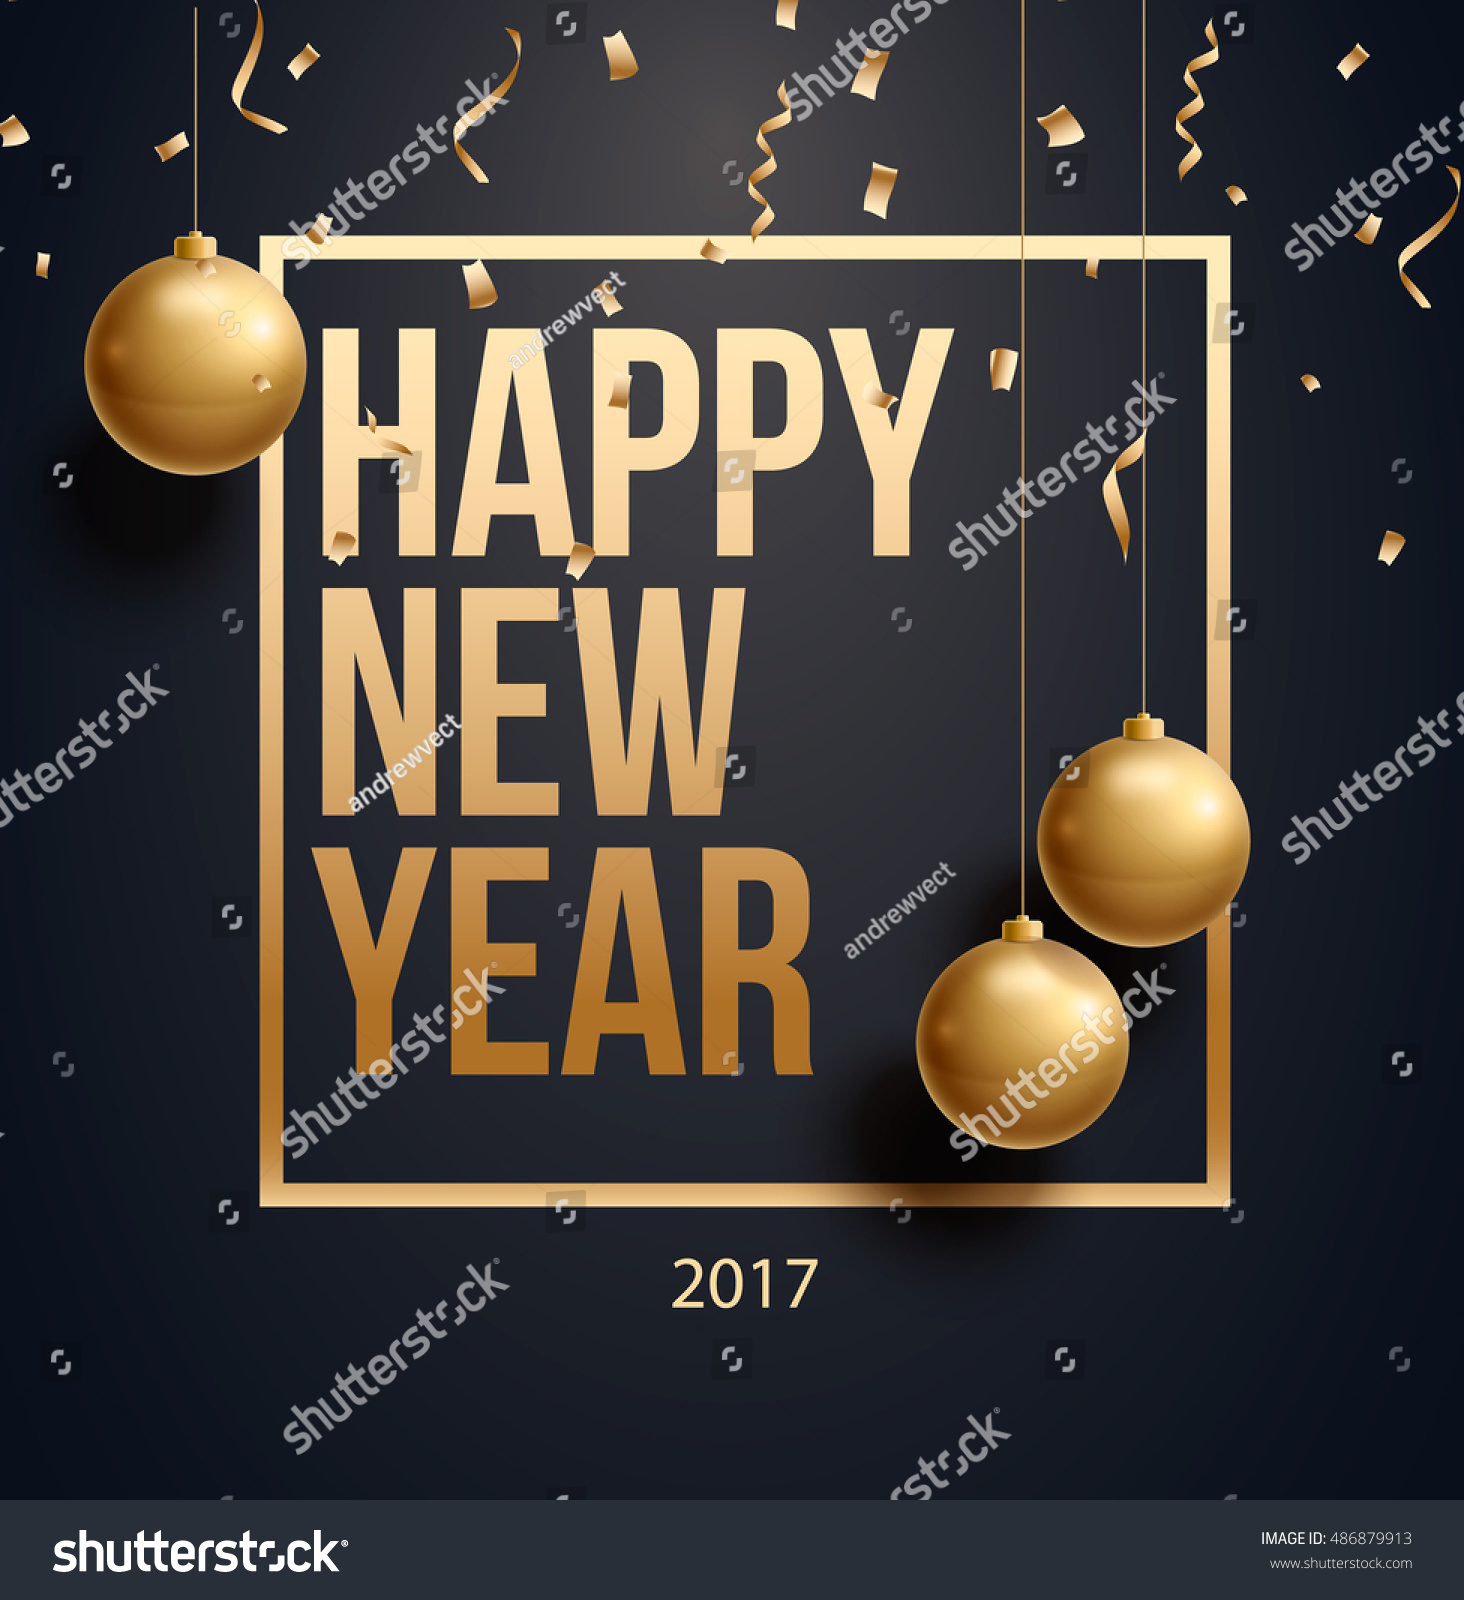 vector illustration of happy new year 2018 gold and black collors place for text christmas balls 2017